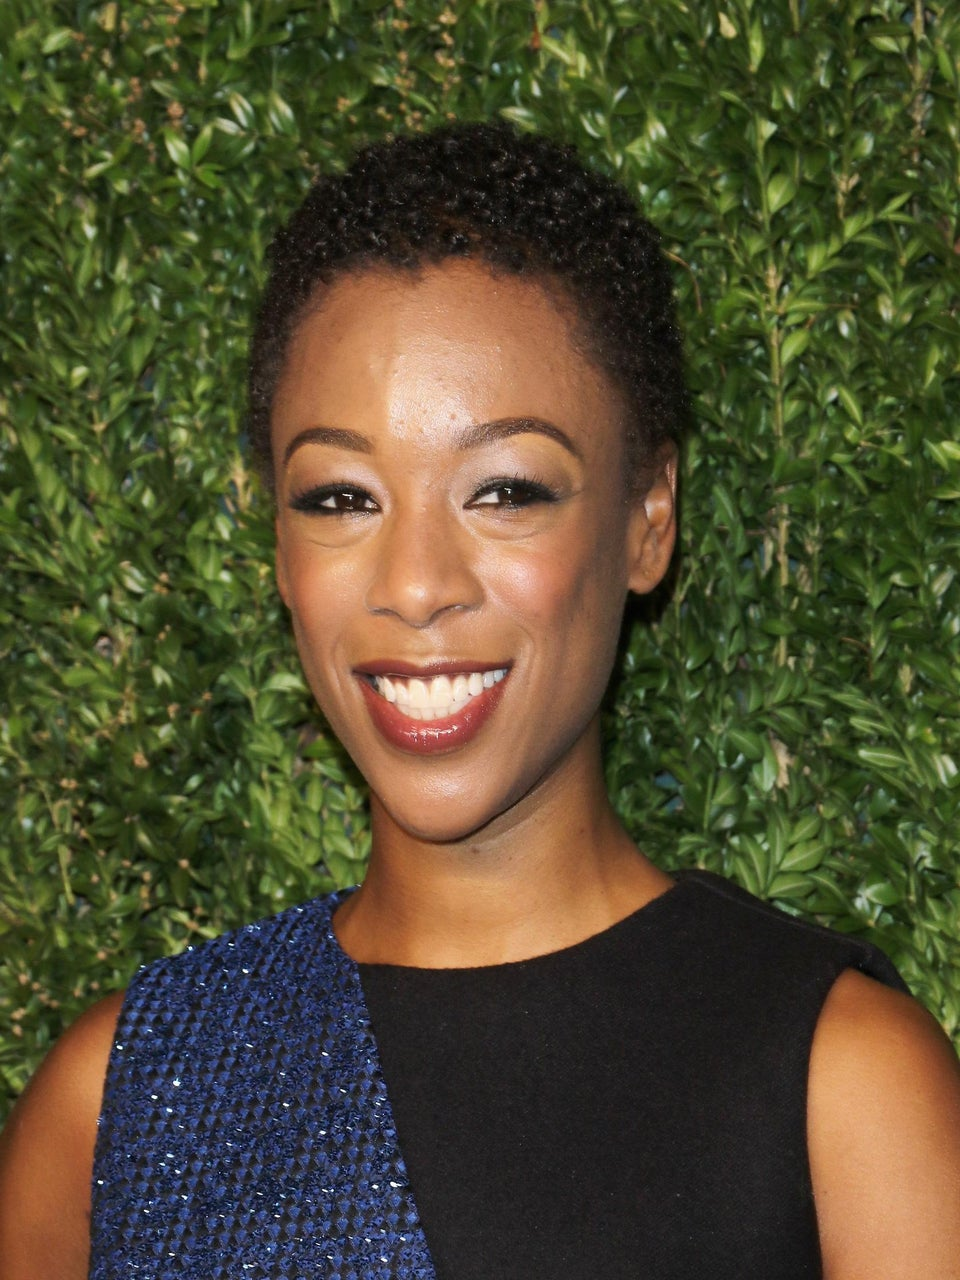 Samira Wiley To Guest Star On 'Will & Grace'